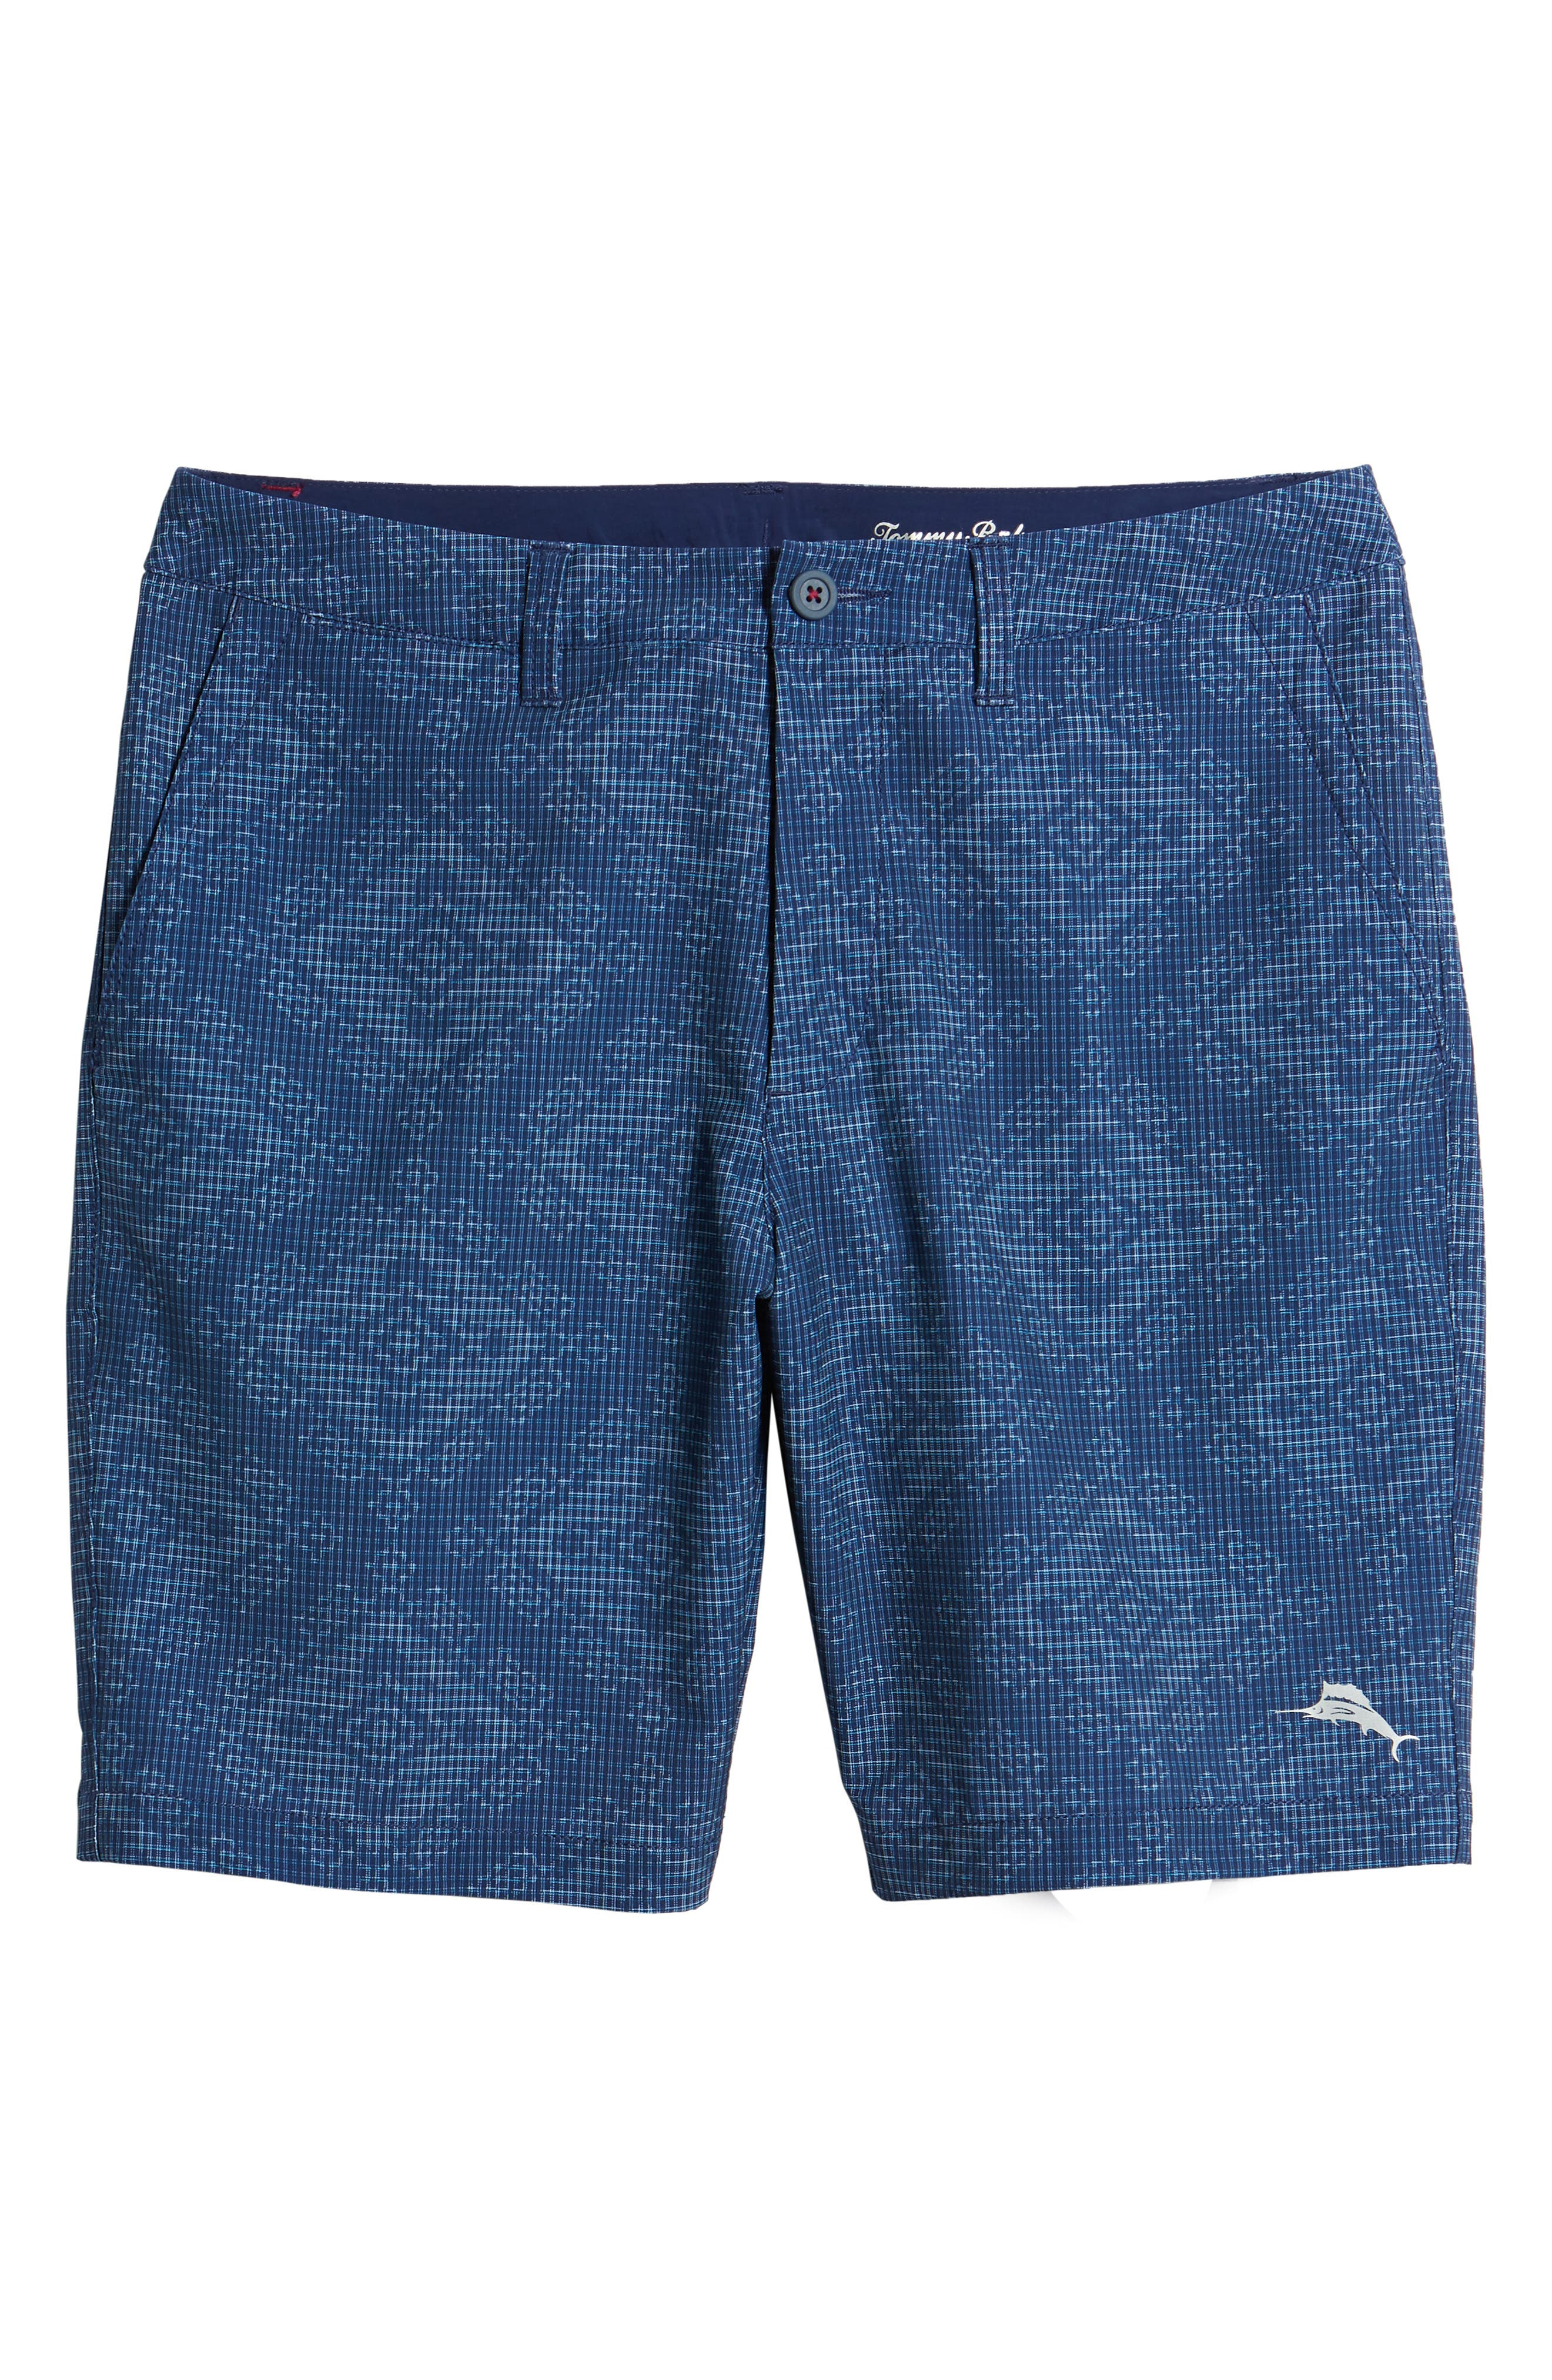 Bayman Geo De Mayo Hybrid Shorts,                             Alternate thumbnail 6, color,                             THRONE BLUE